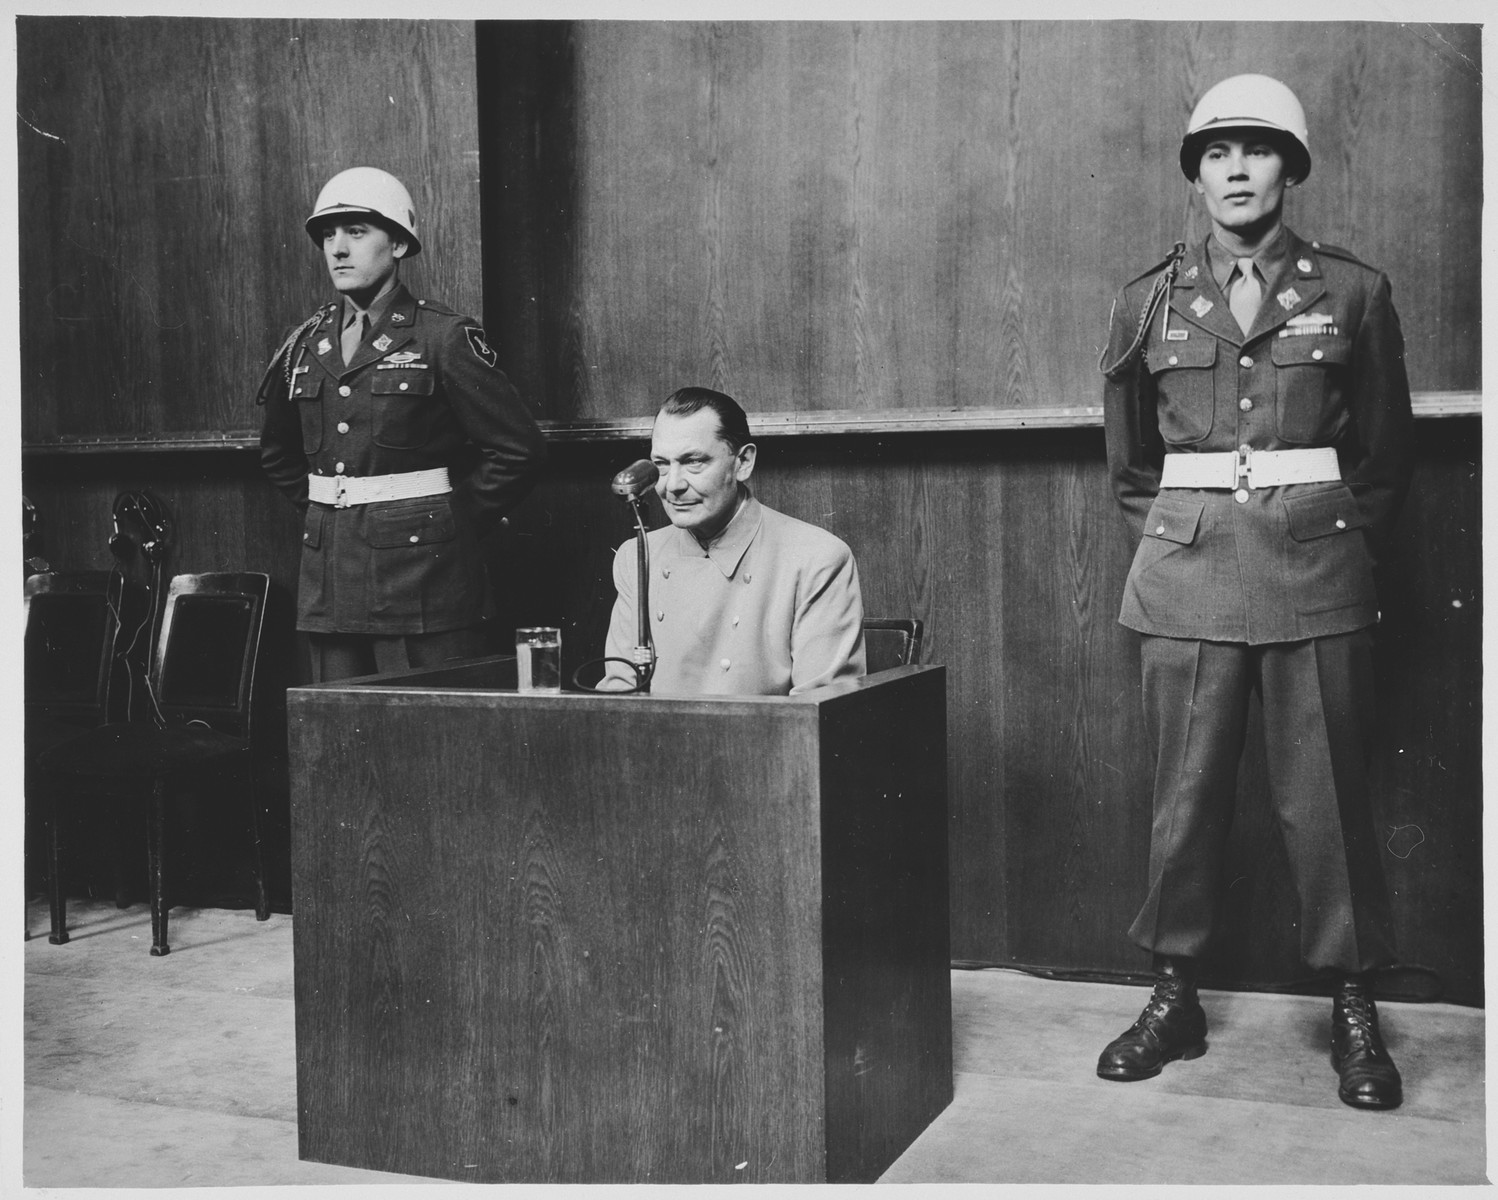 Flanked by two military policemen, Hermann Goering testifies at the International Military Tribunal trial of war criminals at Nuremberg.